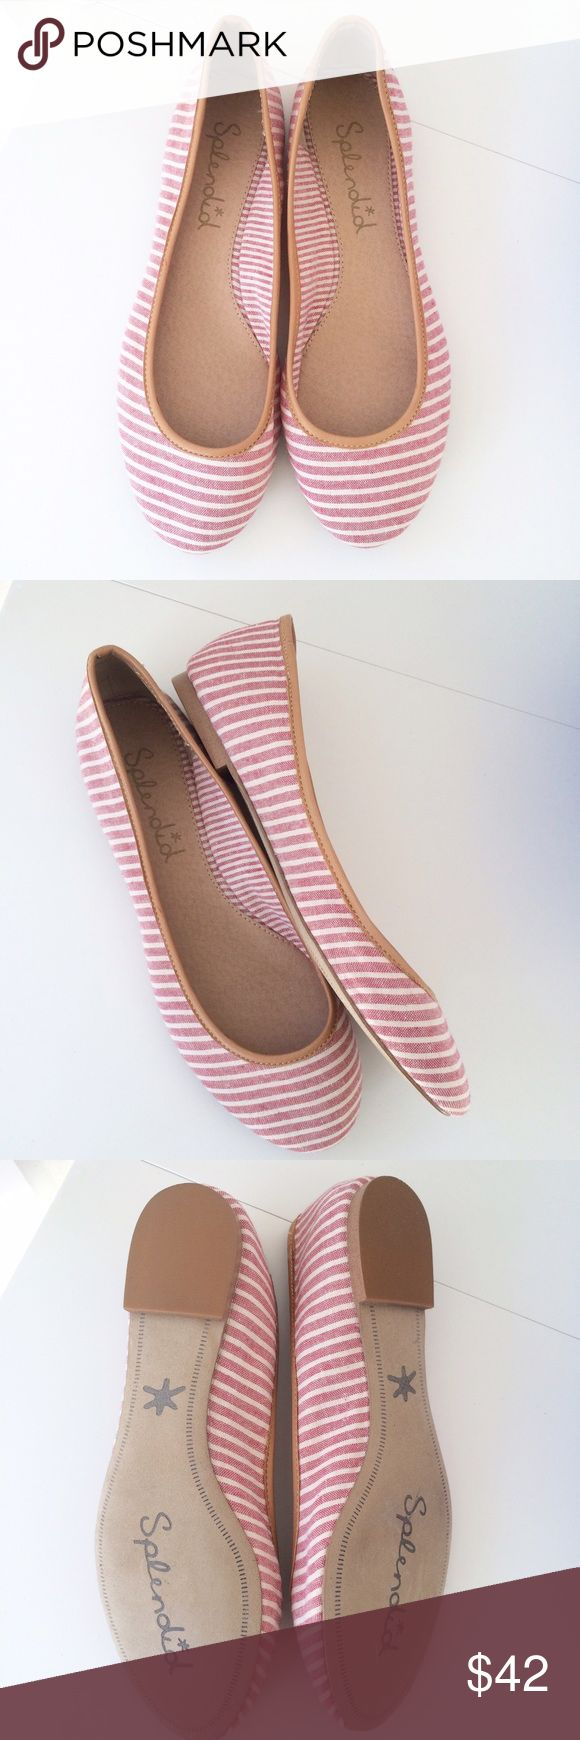 NWOT! Splendid flats Super cute and perfect for summer! NWOT (never worn) Splendid pink/white stripe flats. Size 6 1/2. Fine leather - textile upper. Offers welcome! Splendid Shoes Flats & Loafers